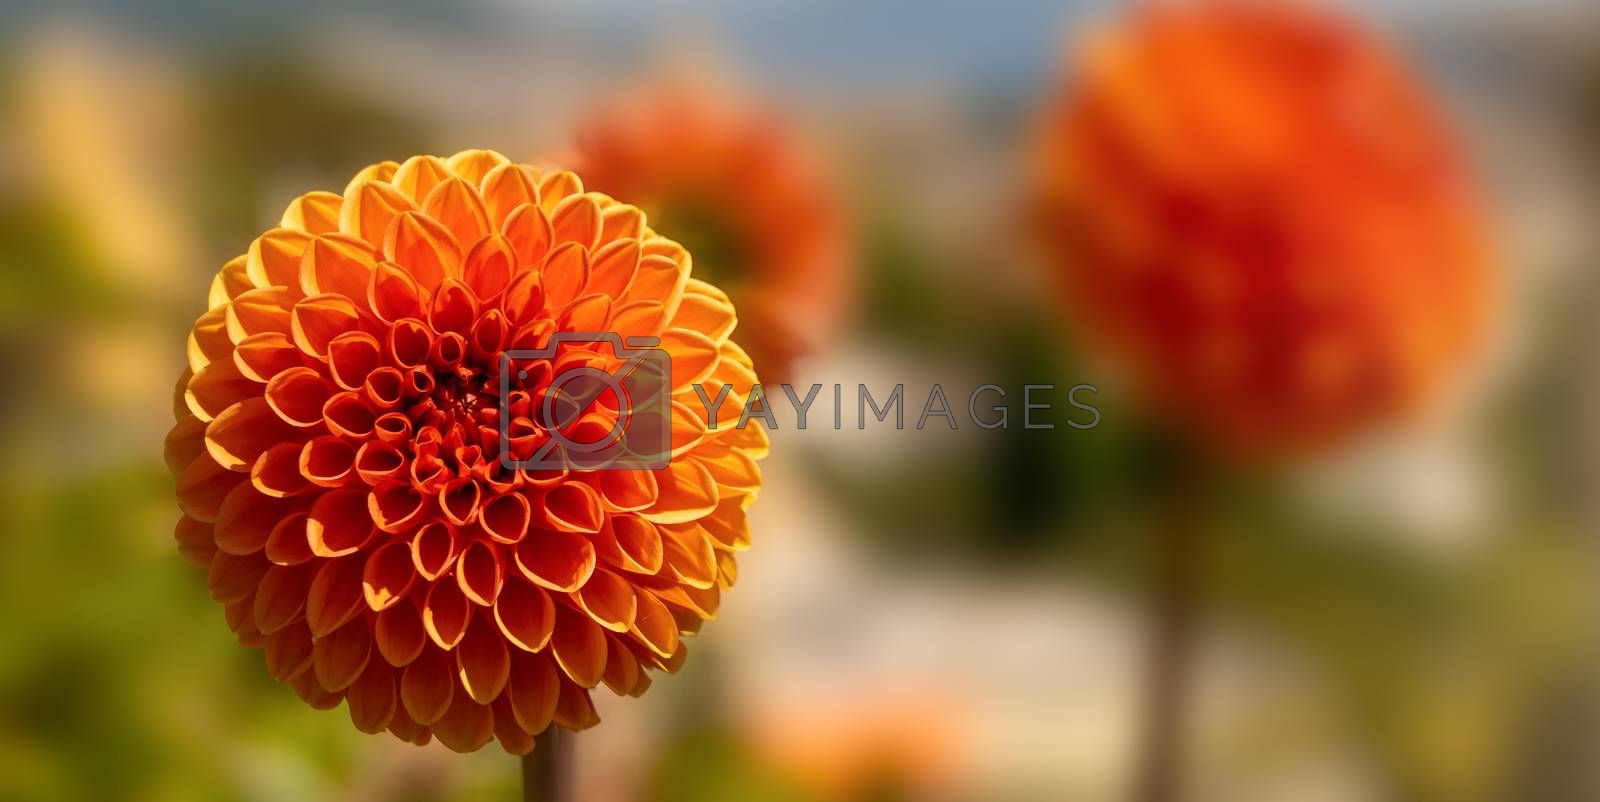 Royalty free image of Orange ball flower with blurred background. by maramade